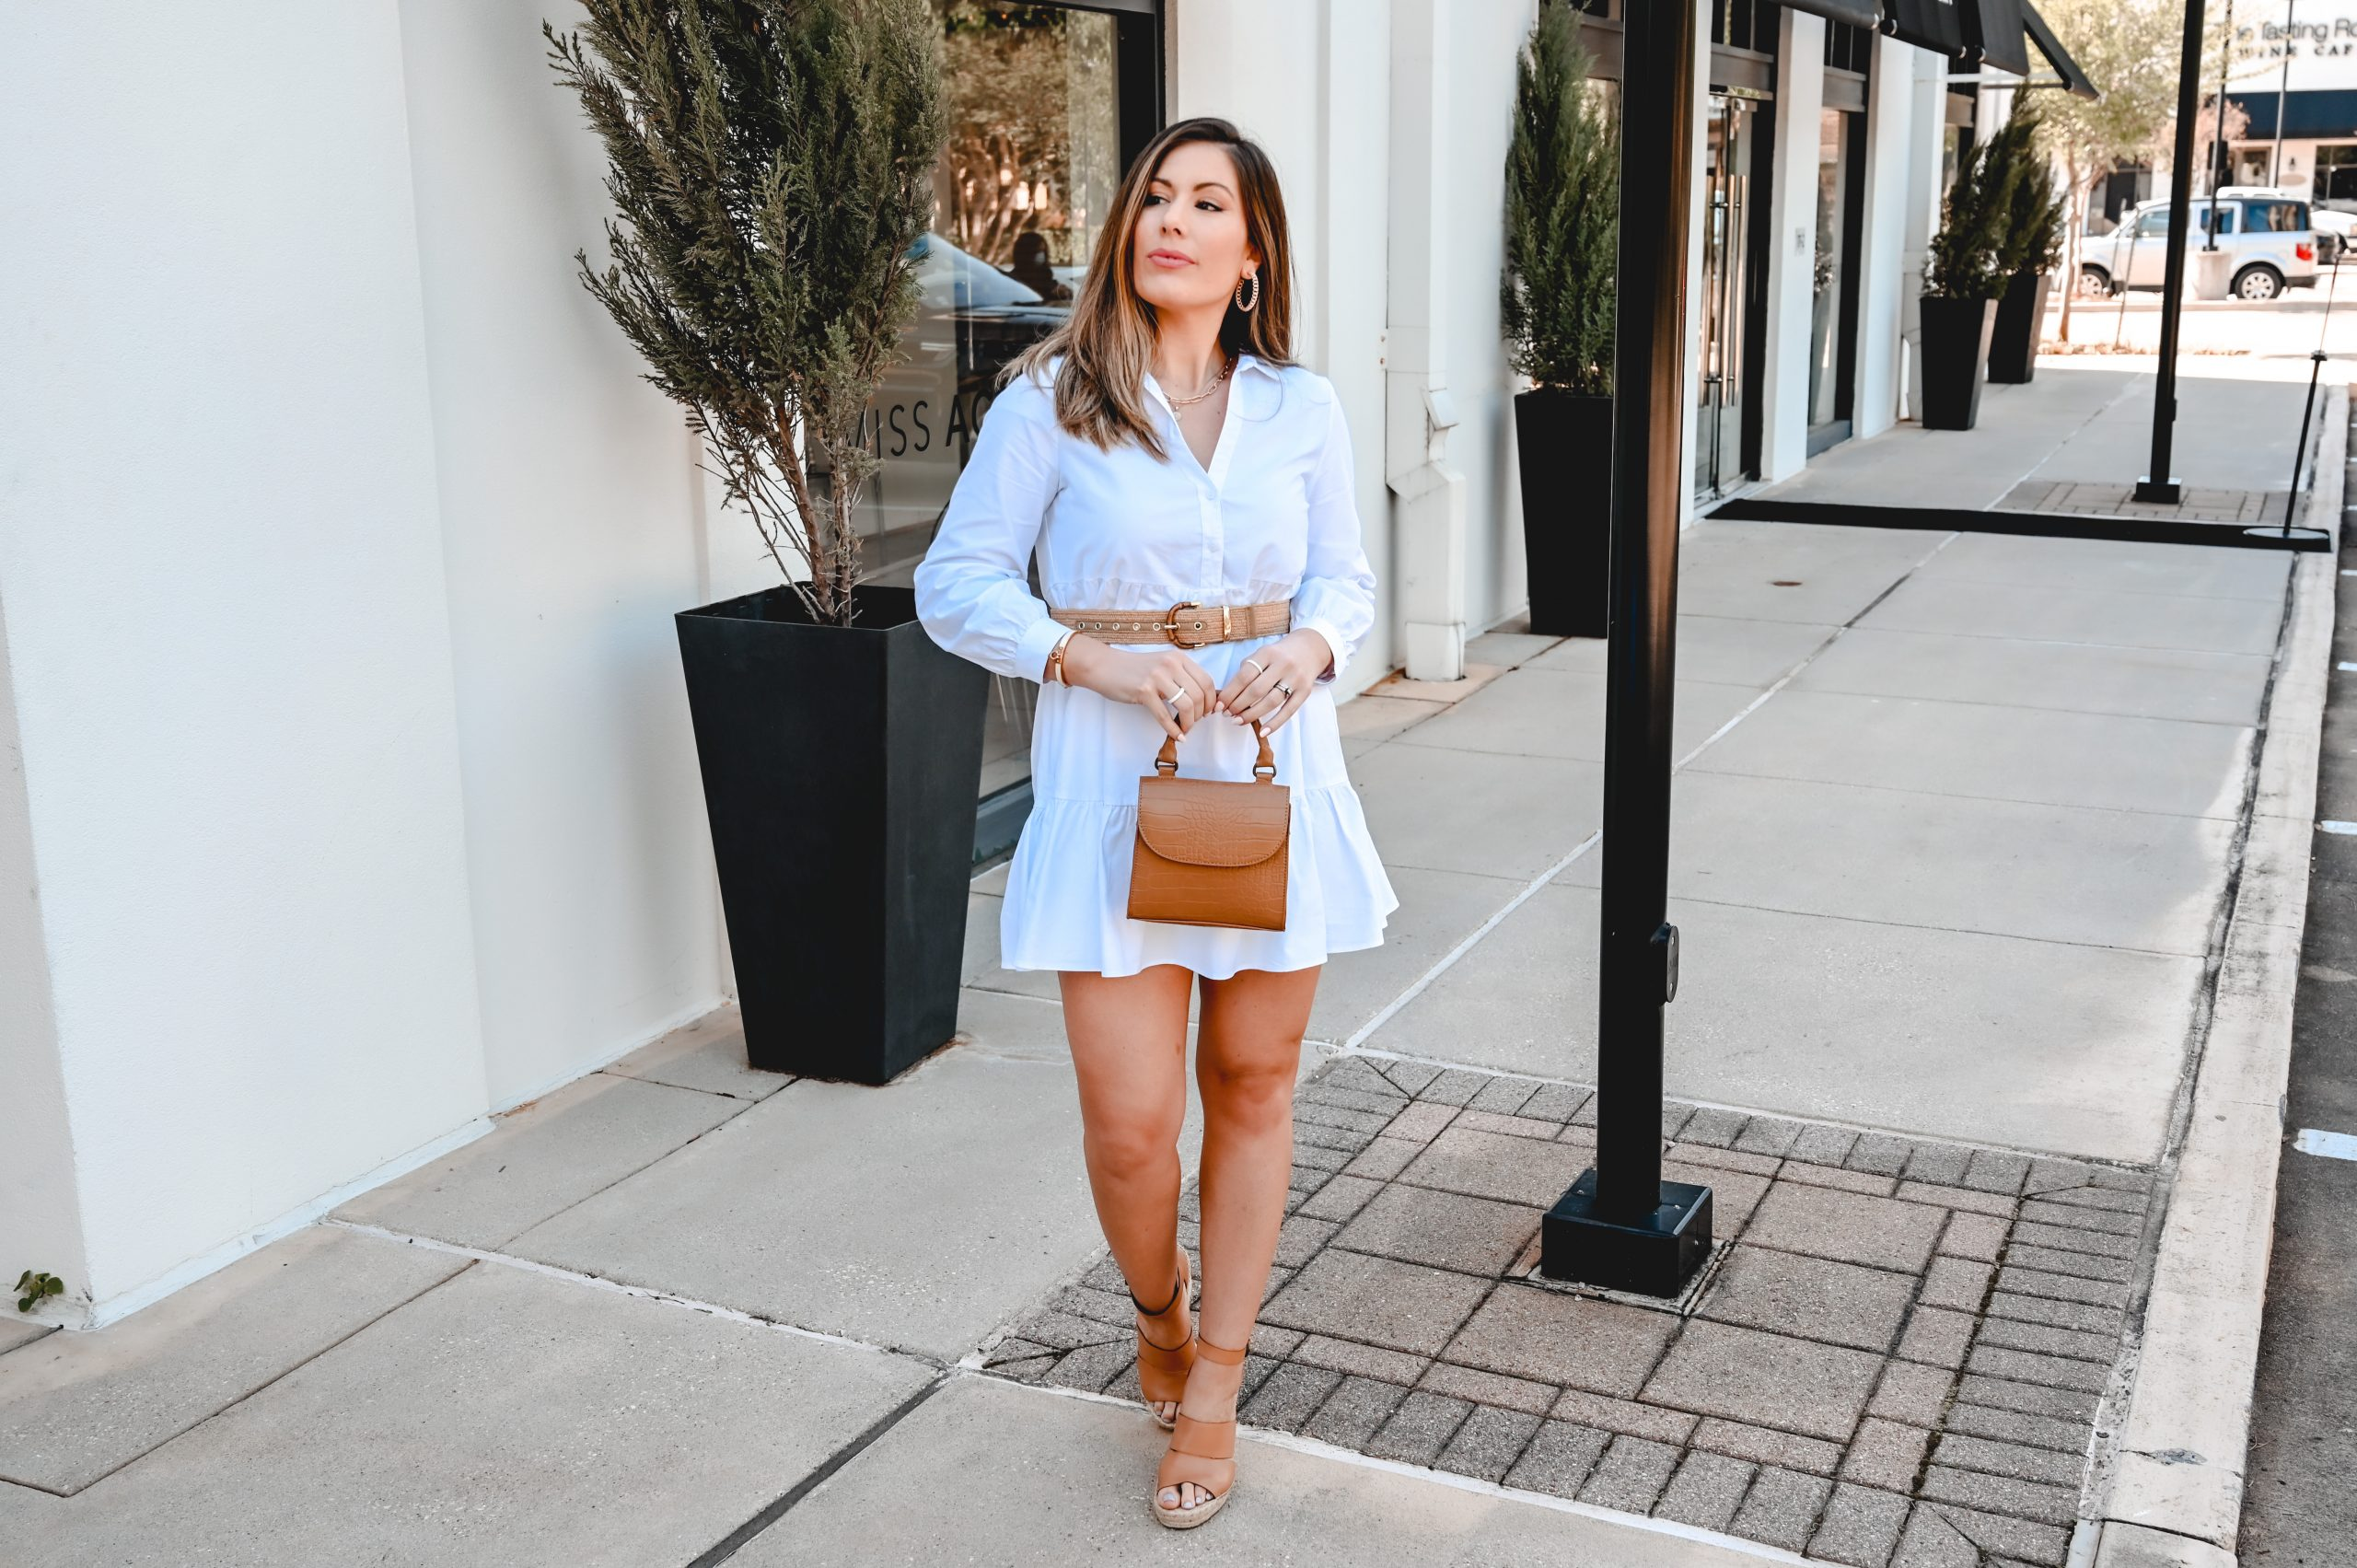 Houston style blogger Maria Munoz shares how to style a white dress in the summer